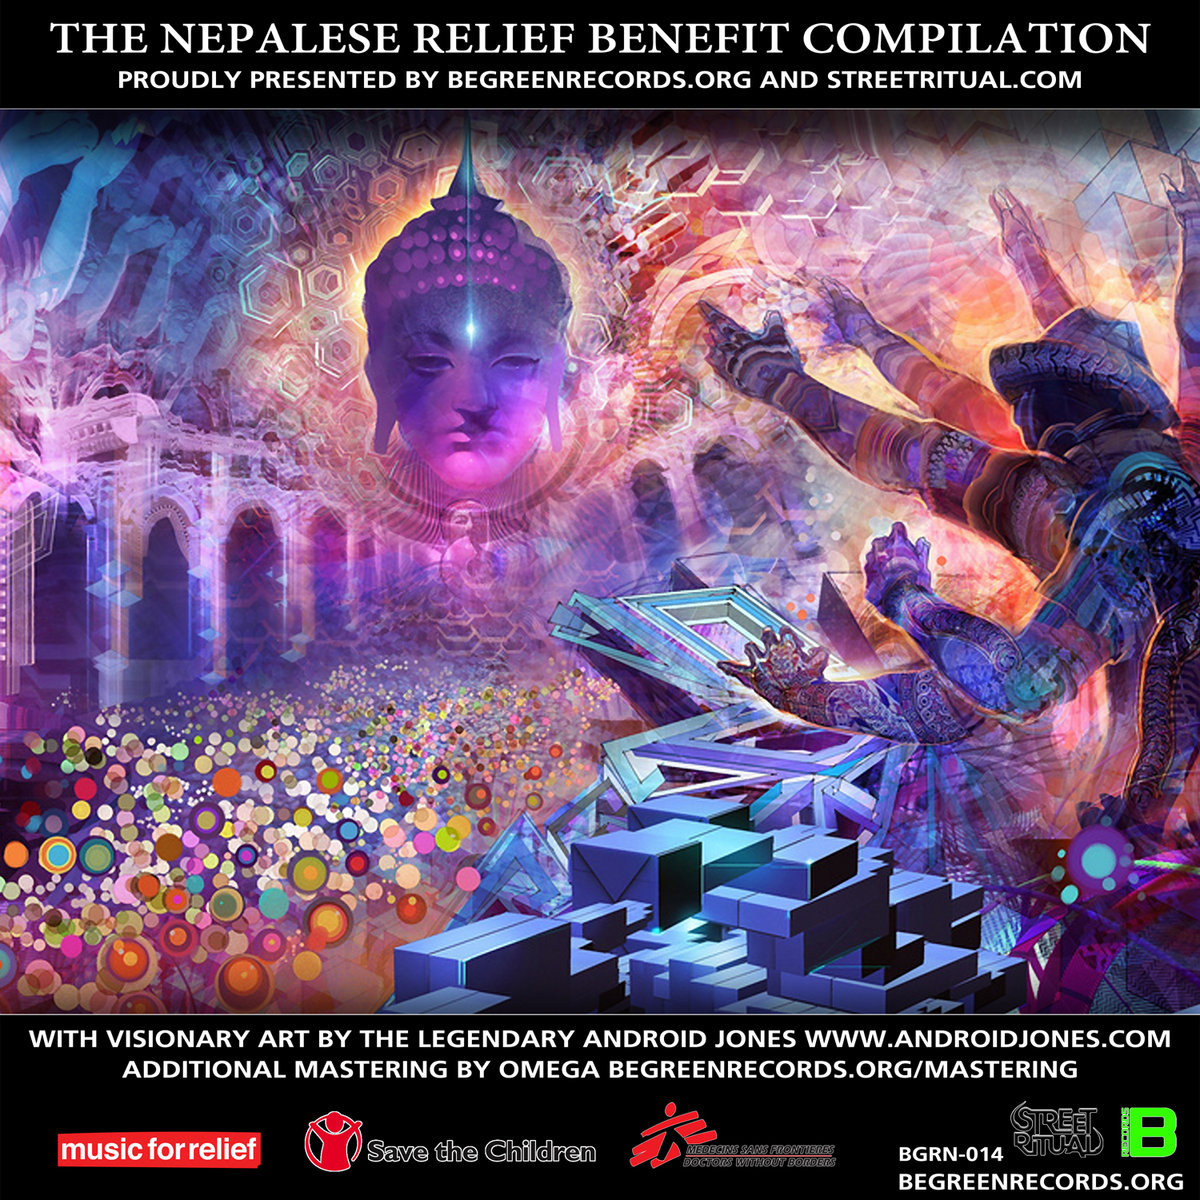 Master Minded - The Mirror @ 'Various Artists - The Nepalese Relief Benefit Compilation' album (bass, electronic)